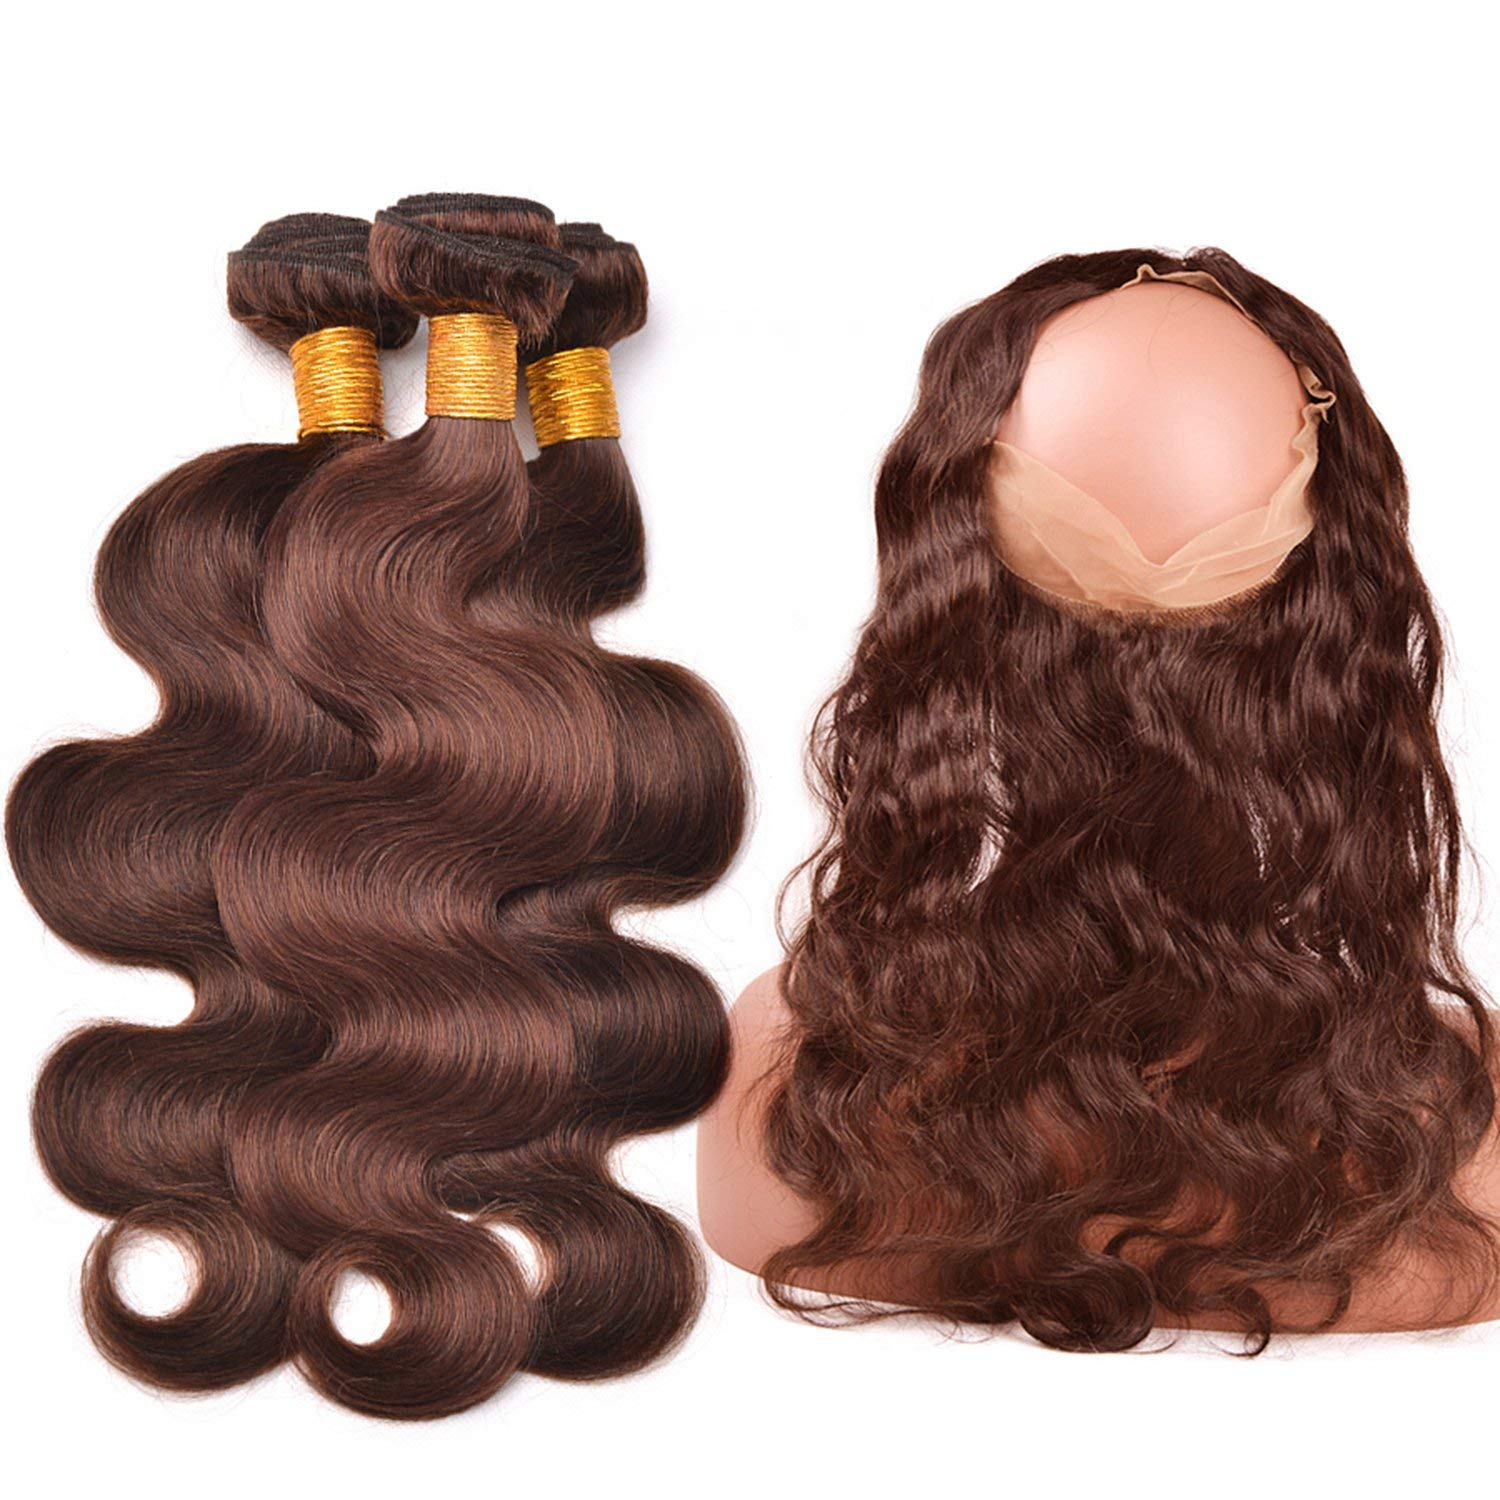 #4 Light Brown 3 Bundles With Closure 360 Frontal Pre Plucked With Baby Hair Peruvian Body Wave 100% Human Hair Romantico Non Remy,20 22 22 & Closure18,#4,Three Part 71VmwkF6LIL